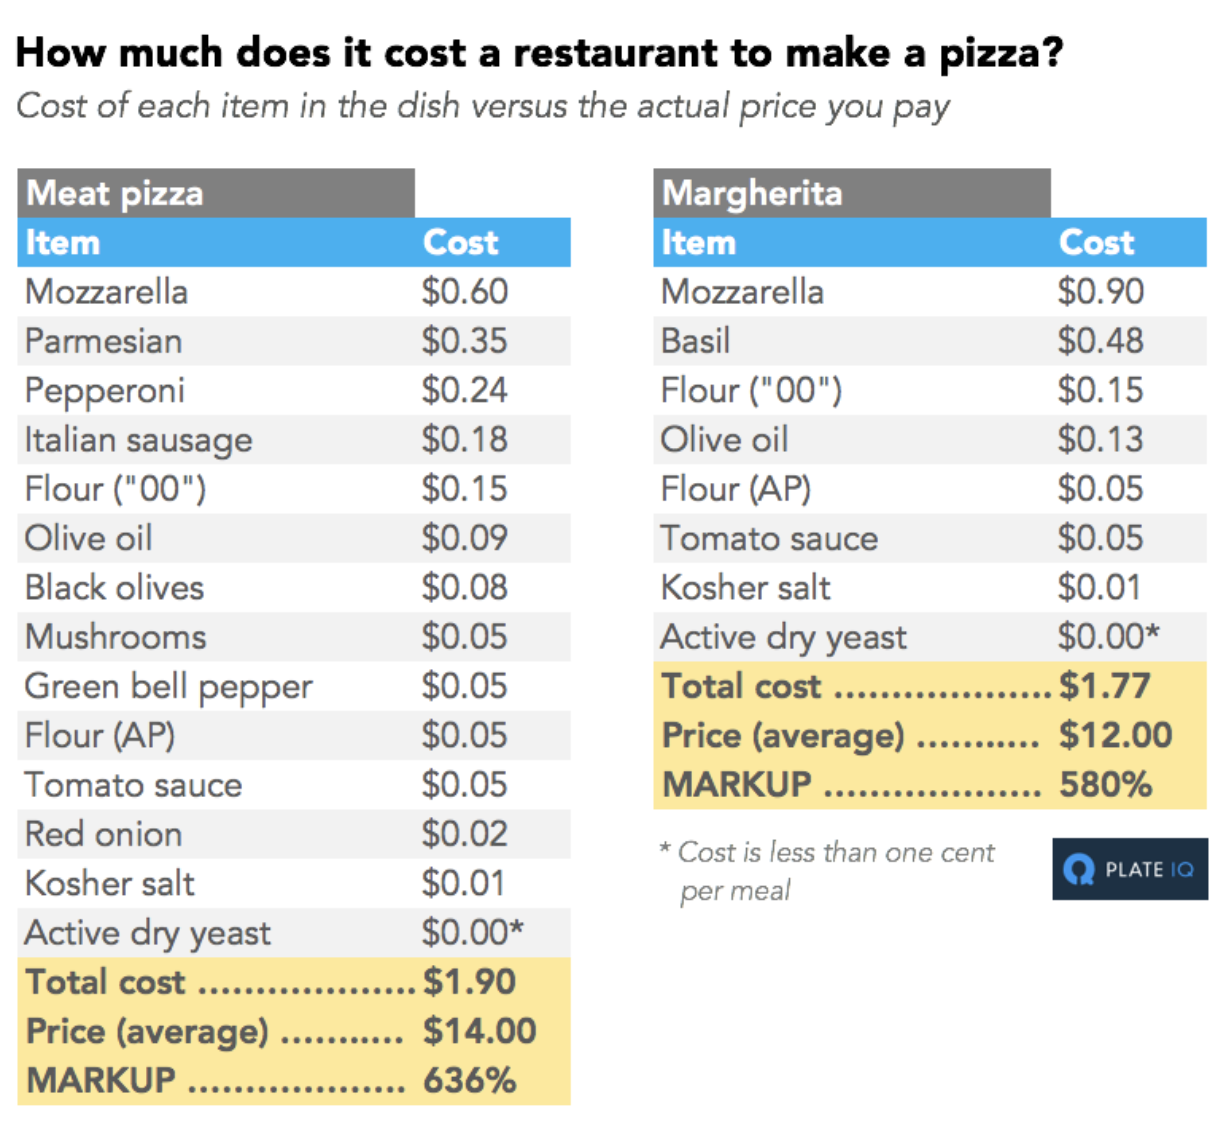 Example of a detailed markup analysis for a menu item